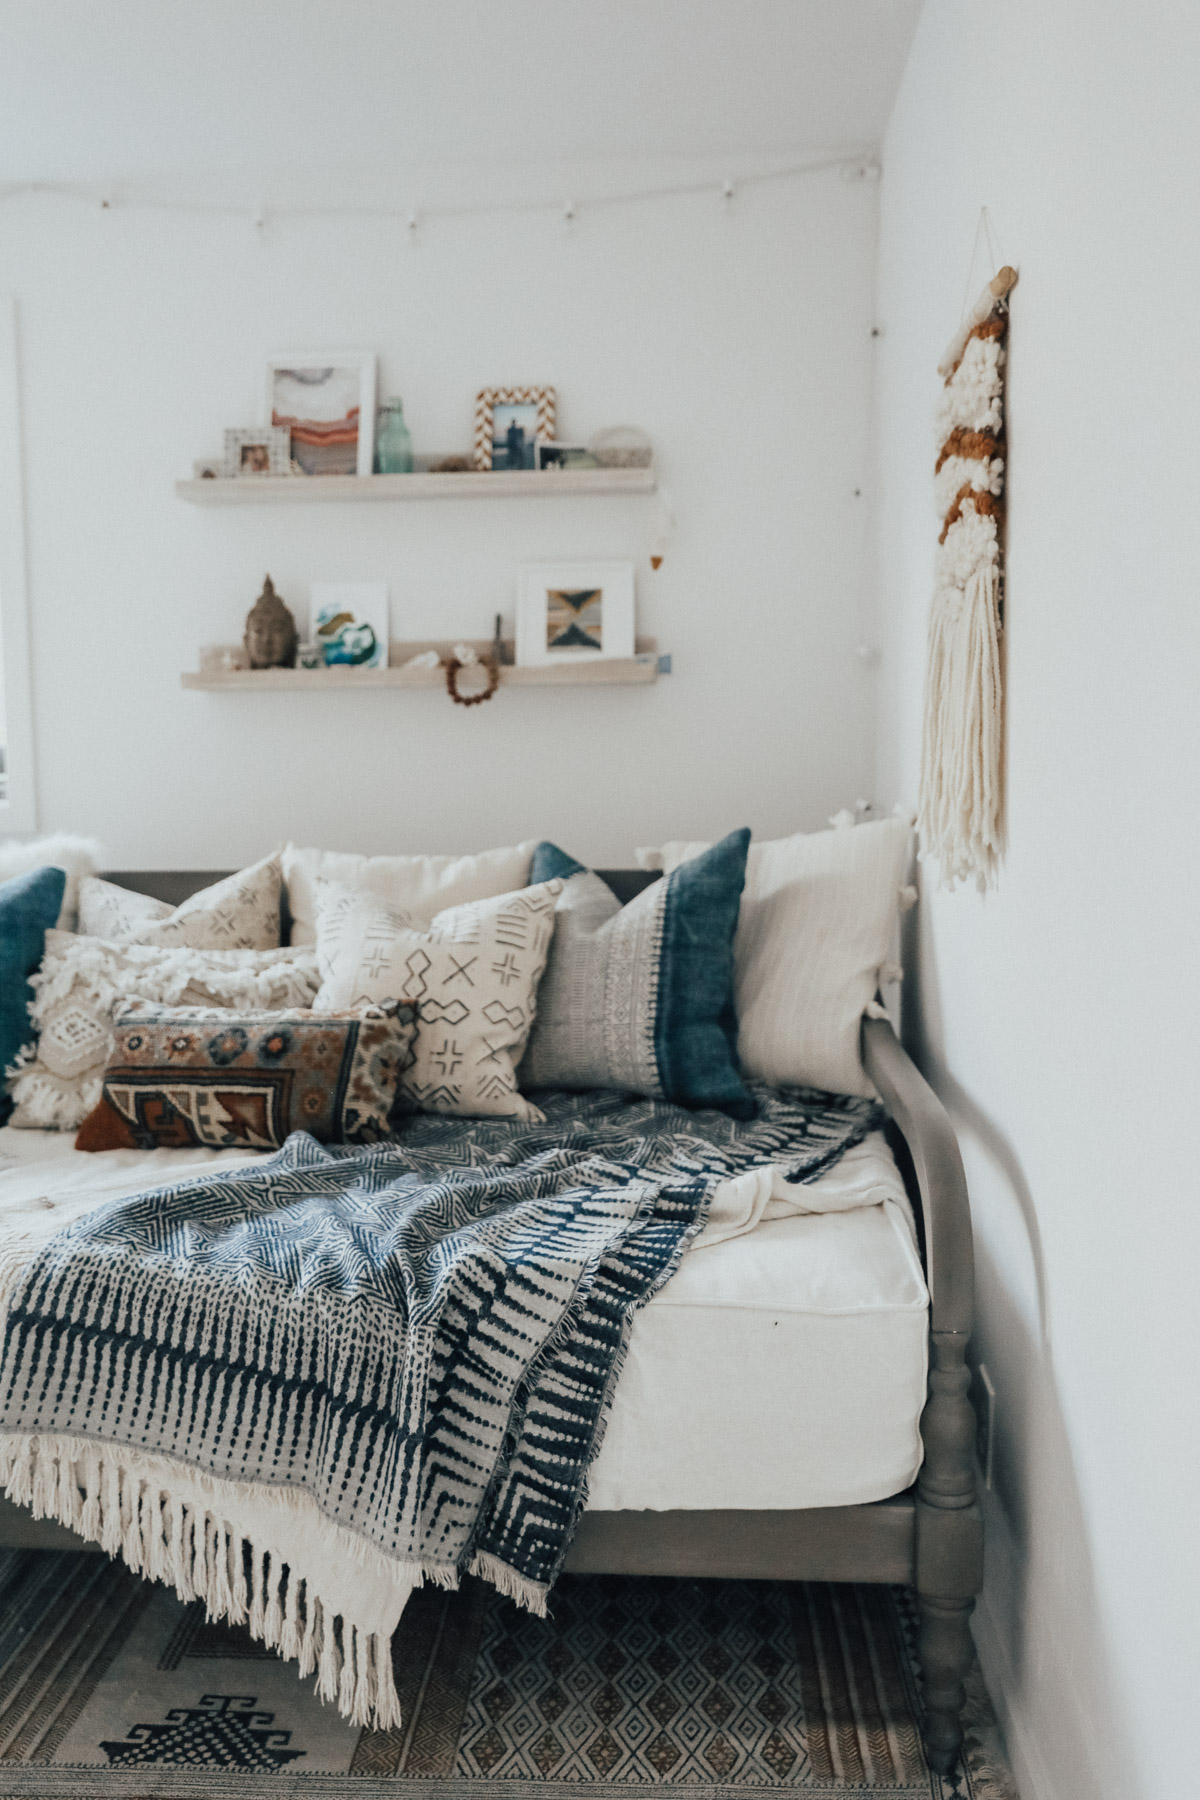 Grand World Market Daybed Lulu Georgia Pillows How To Style A Daybed Advice From A Twenty Something World Market Studio Daybed World Market Studio Daybed Slipcover houzz-03 World Market Daybed